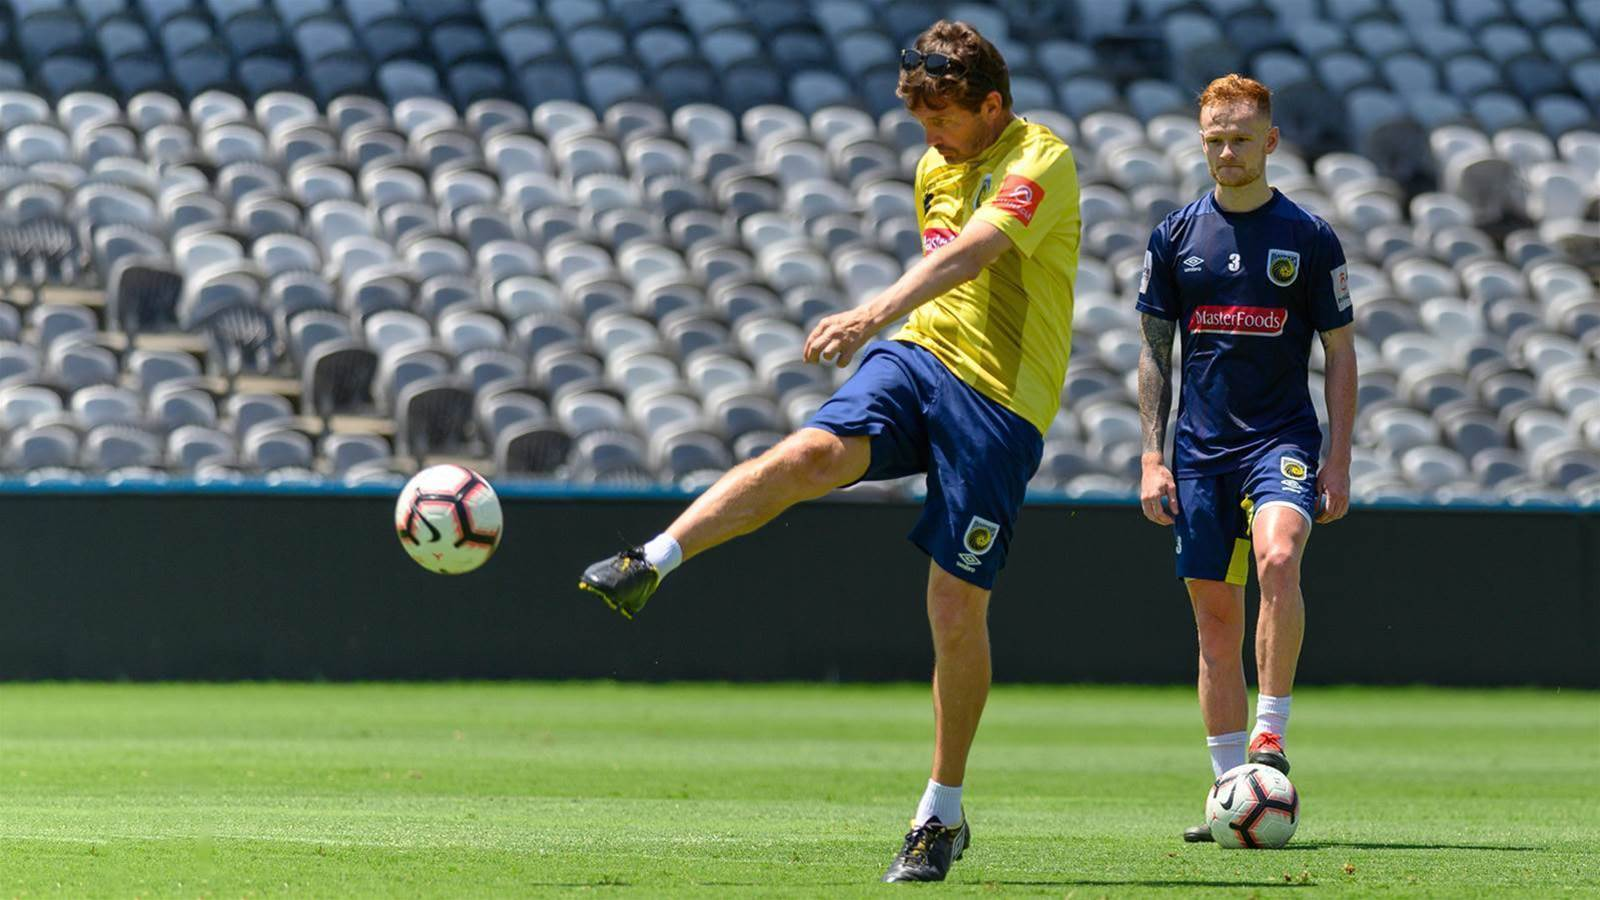 Pic Special: Should Mariners play Mulvey?